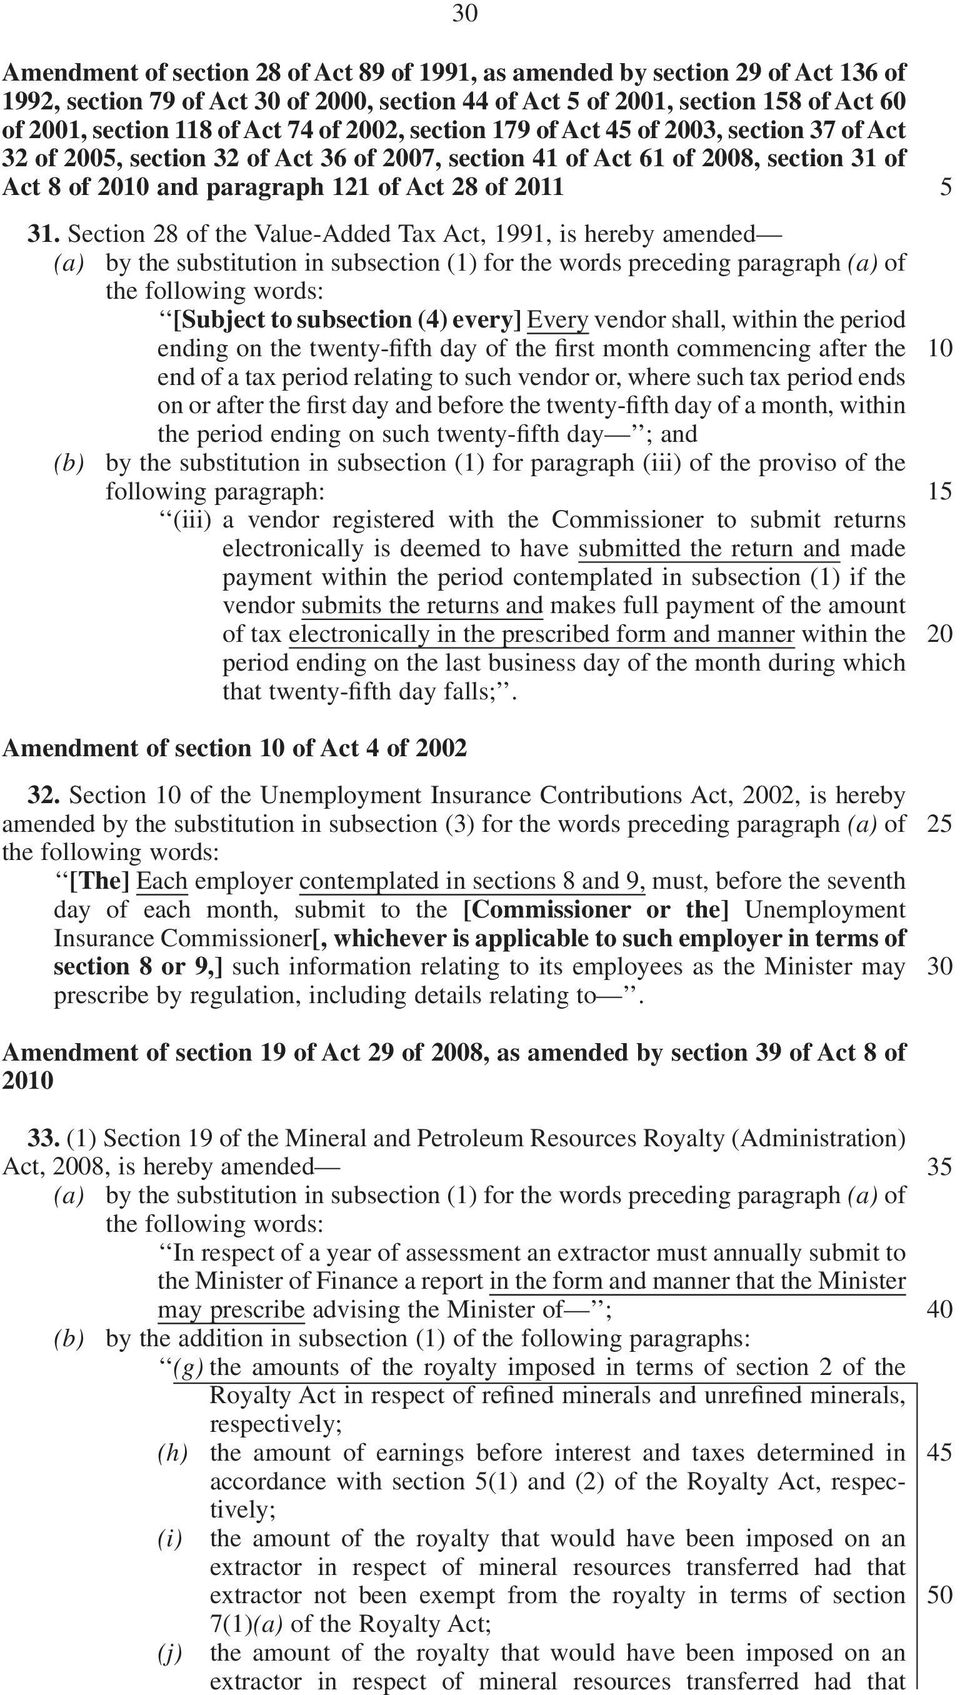 Section 28 of the Value-Added Tax Act, 1991, is hereby amended (a) by the substitution in subsection (1) for the words preceding paragraph (a) of the following words: [Subject to subsection (4)